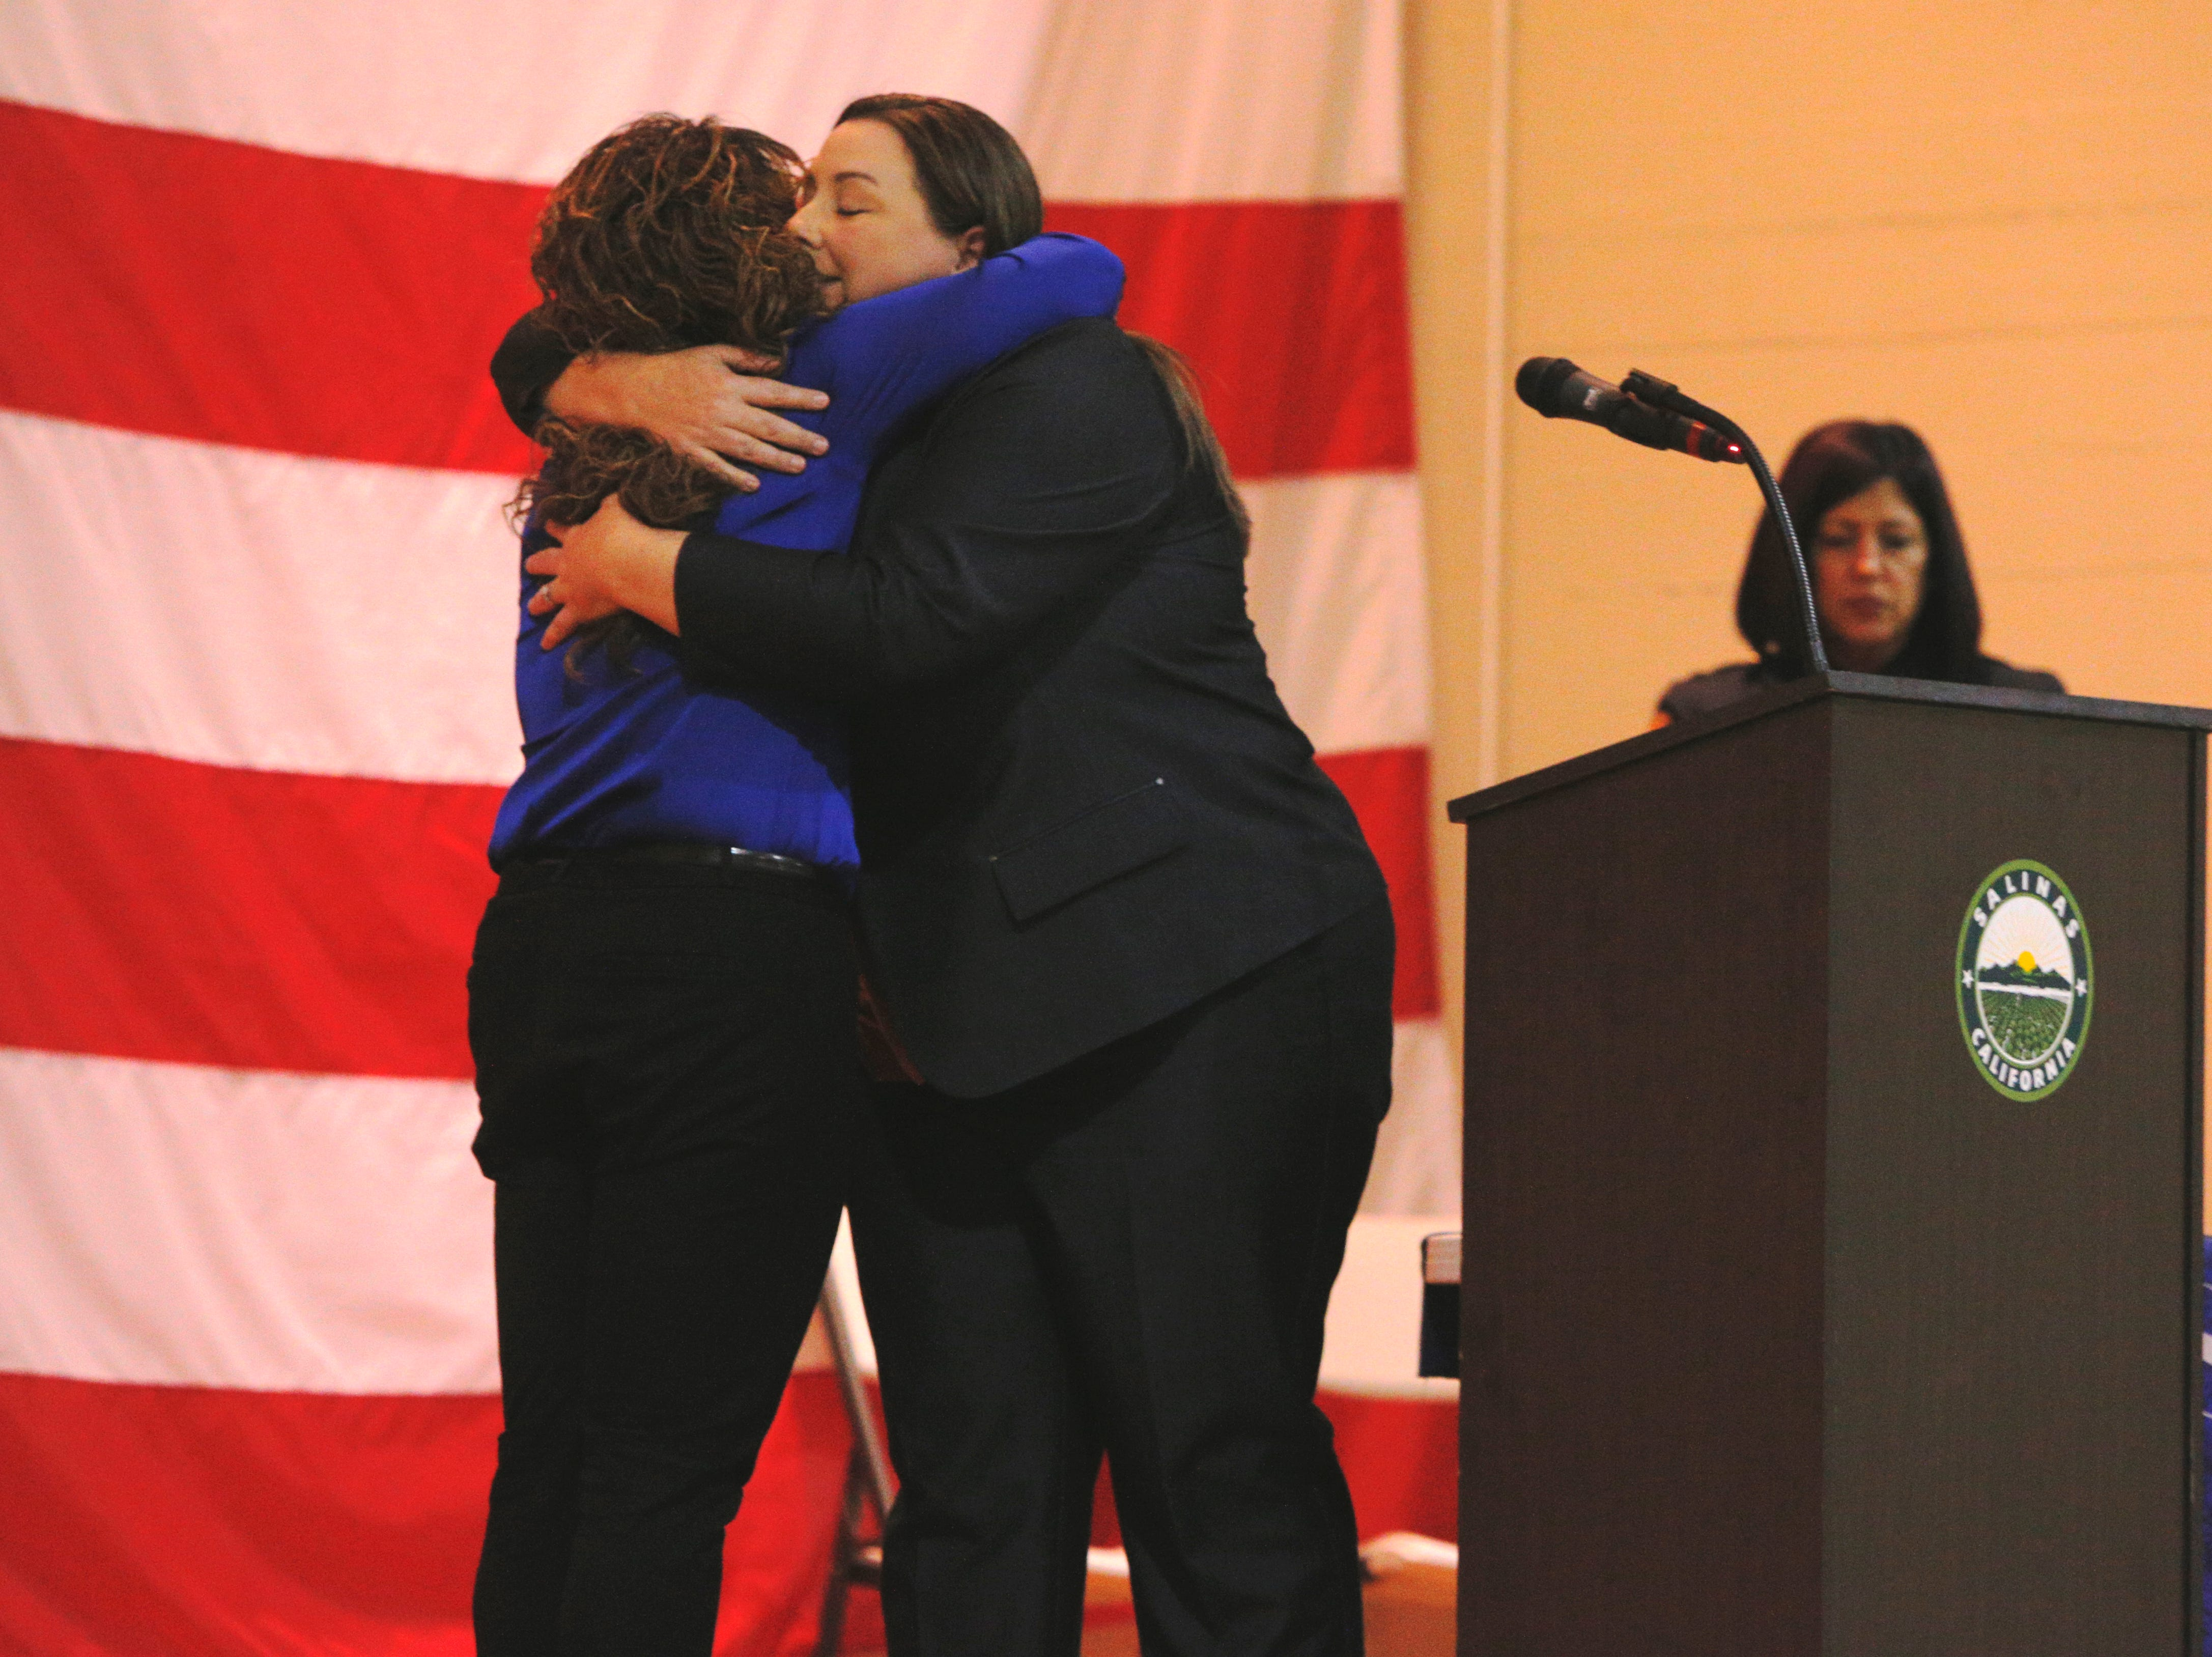 Cmdr. Kim Robinson hugs Community Service Officer Melissa Ramon, who won employee of the year March 14, 2019, at the Salinas Police Department's 2018 awards ceremony.